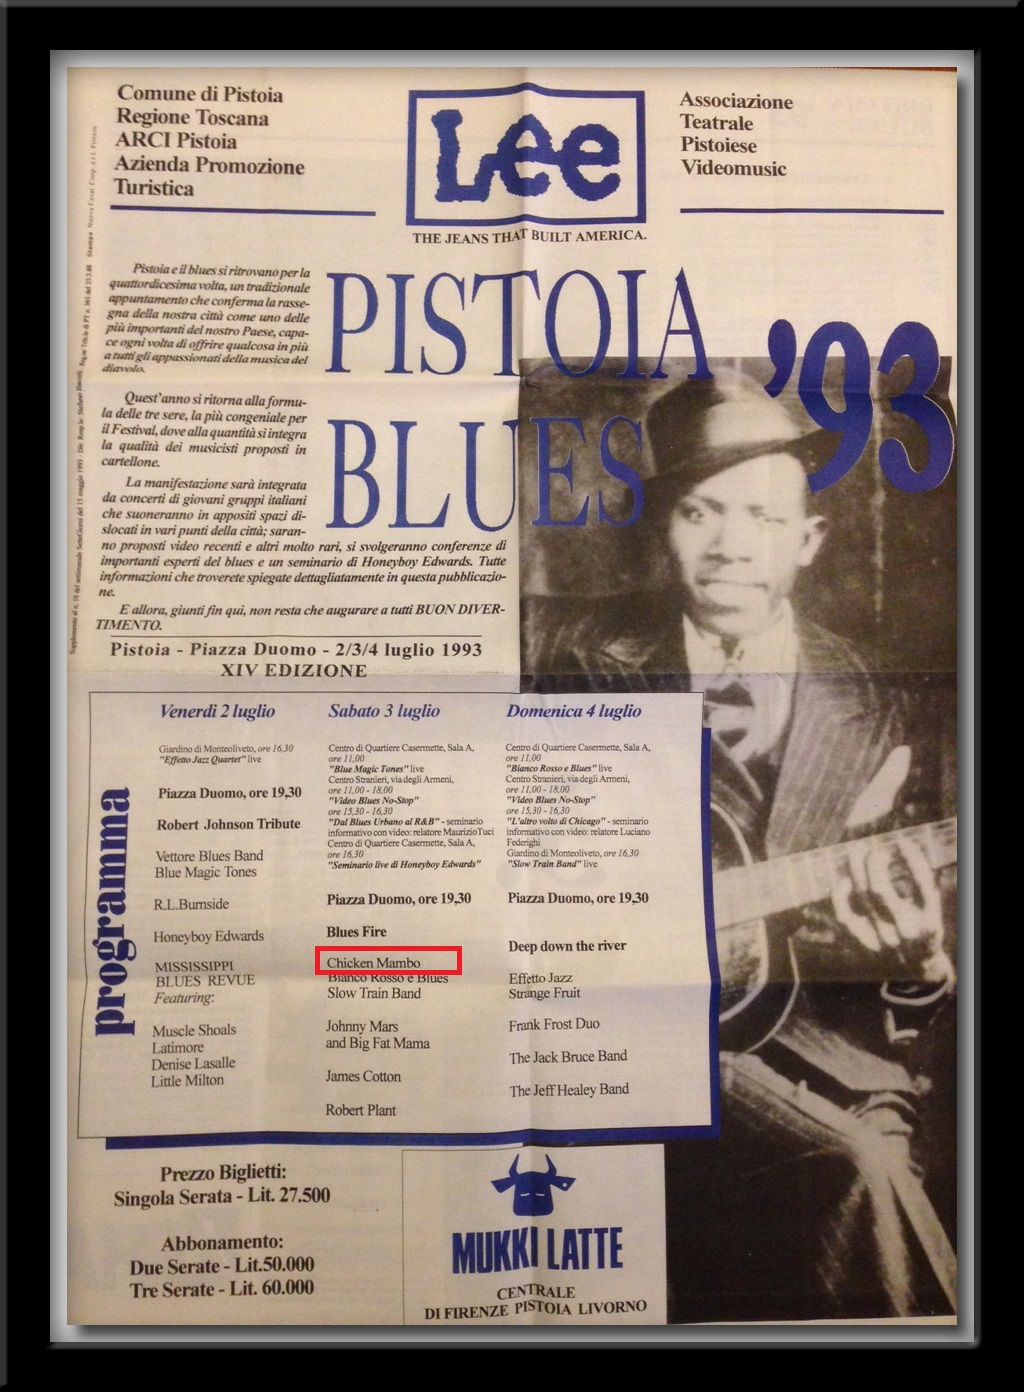 Pistoia Blues 93 program